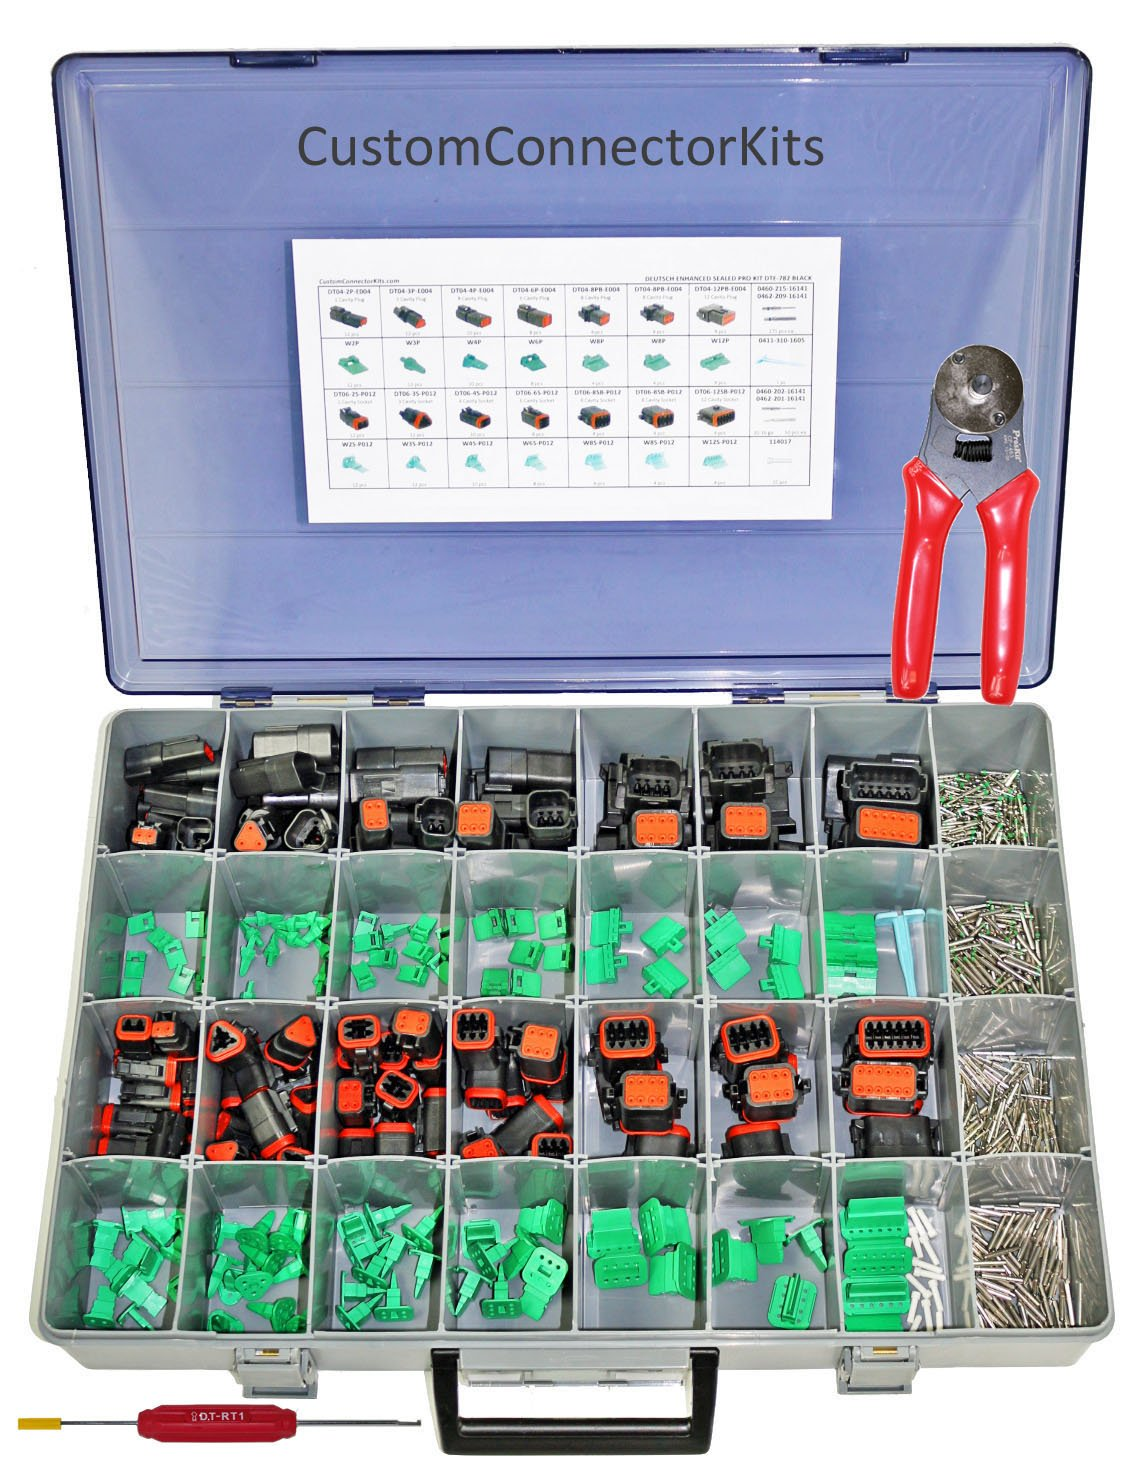 Deutsch DT Enhanced Sealed Pro Connector Kit DTE-800 Black With Crimp Tool: Black Enhanced Environmentally Sealed Automotive Electrical Connectors 14-20 Gauge 800 Piece Kit With 4-Way Indent Crimp Tool